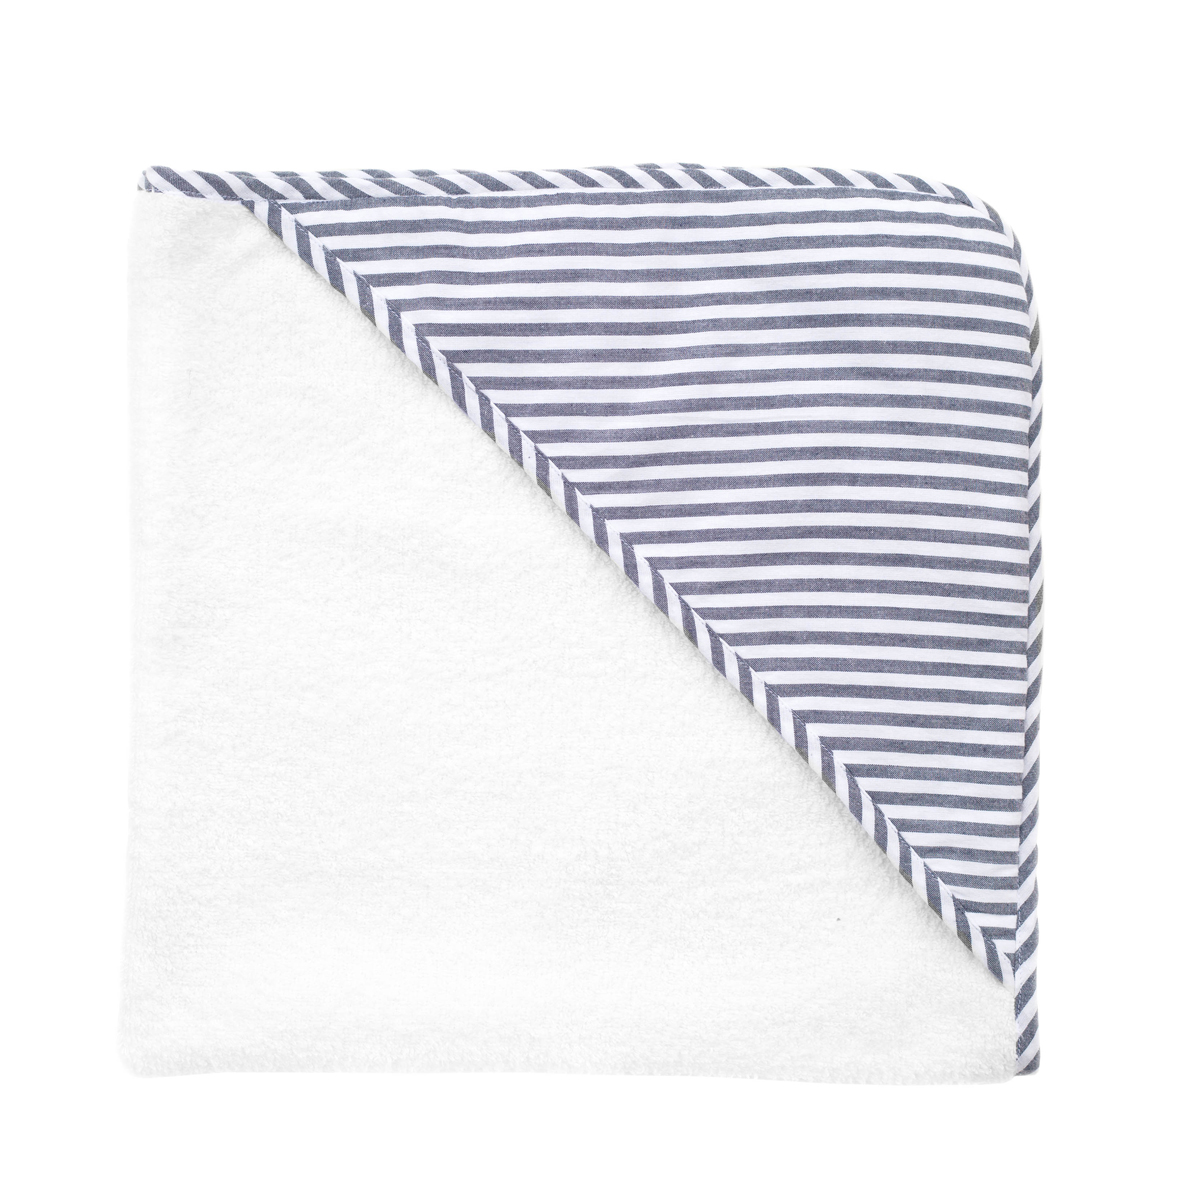 Louelle Hooded Towel in Harbor Island Blue